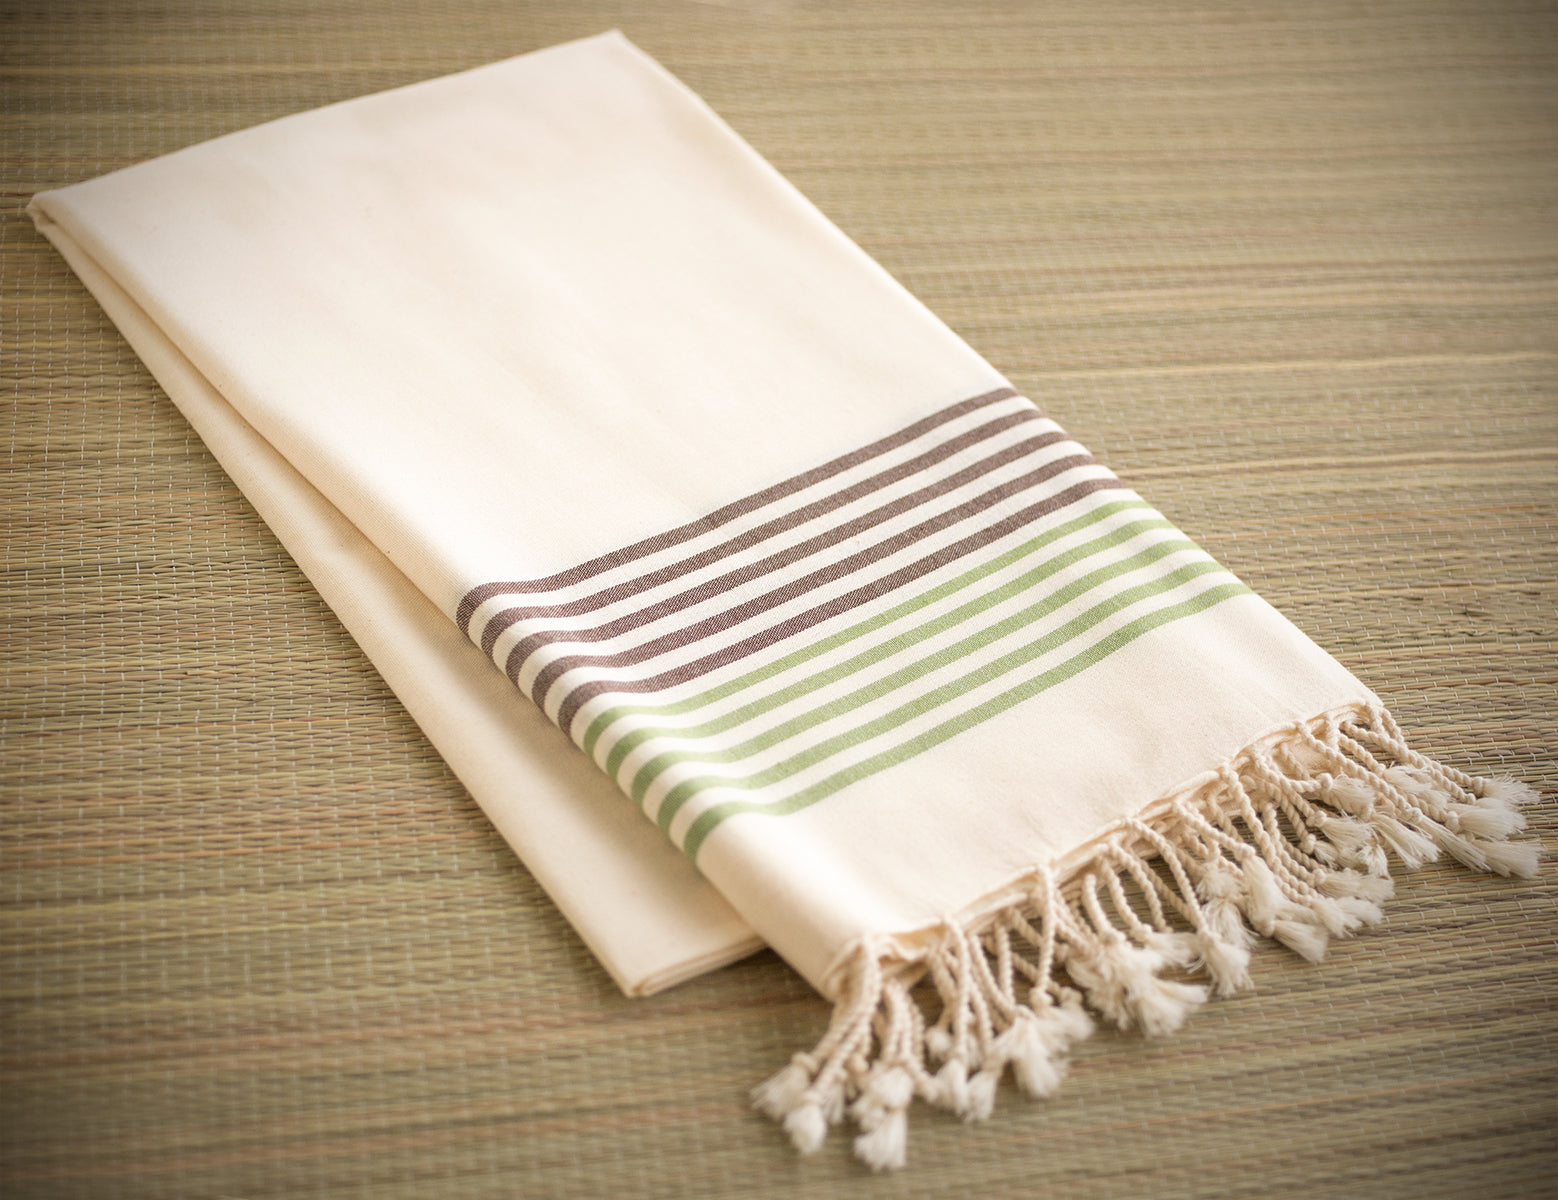 Striped Cotton Peshtemal Towel - Green